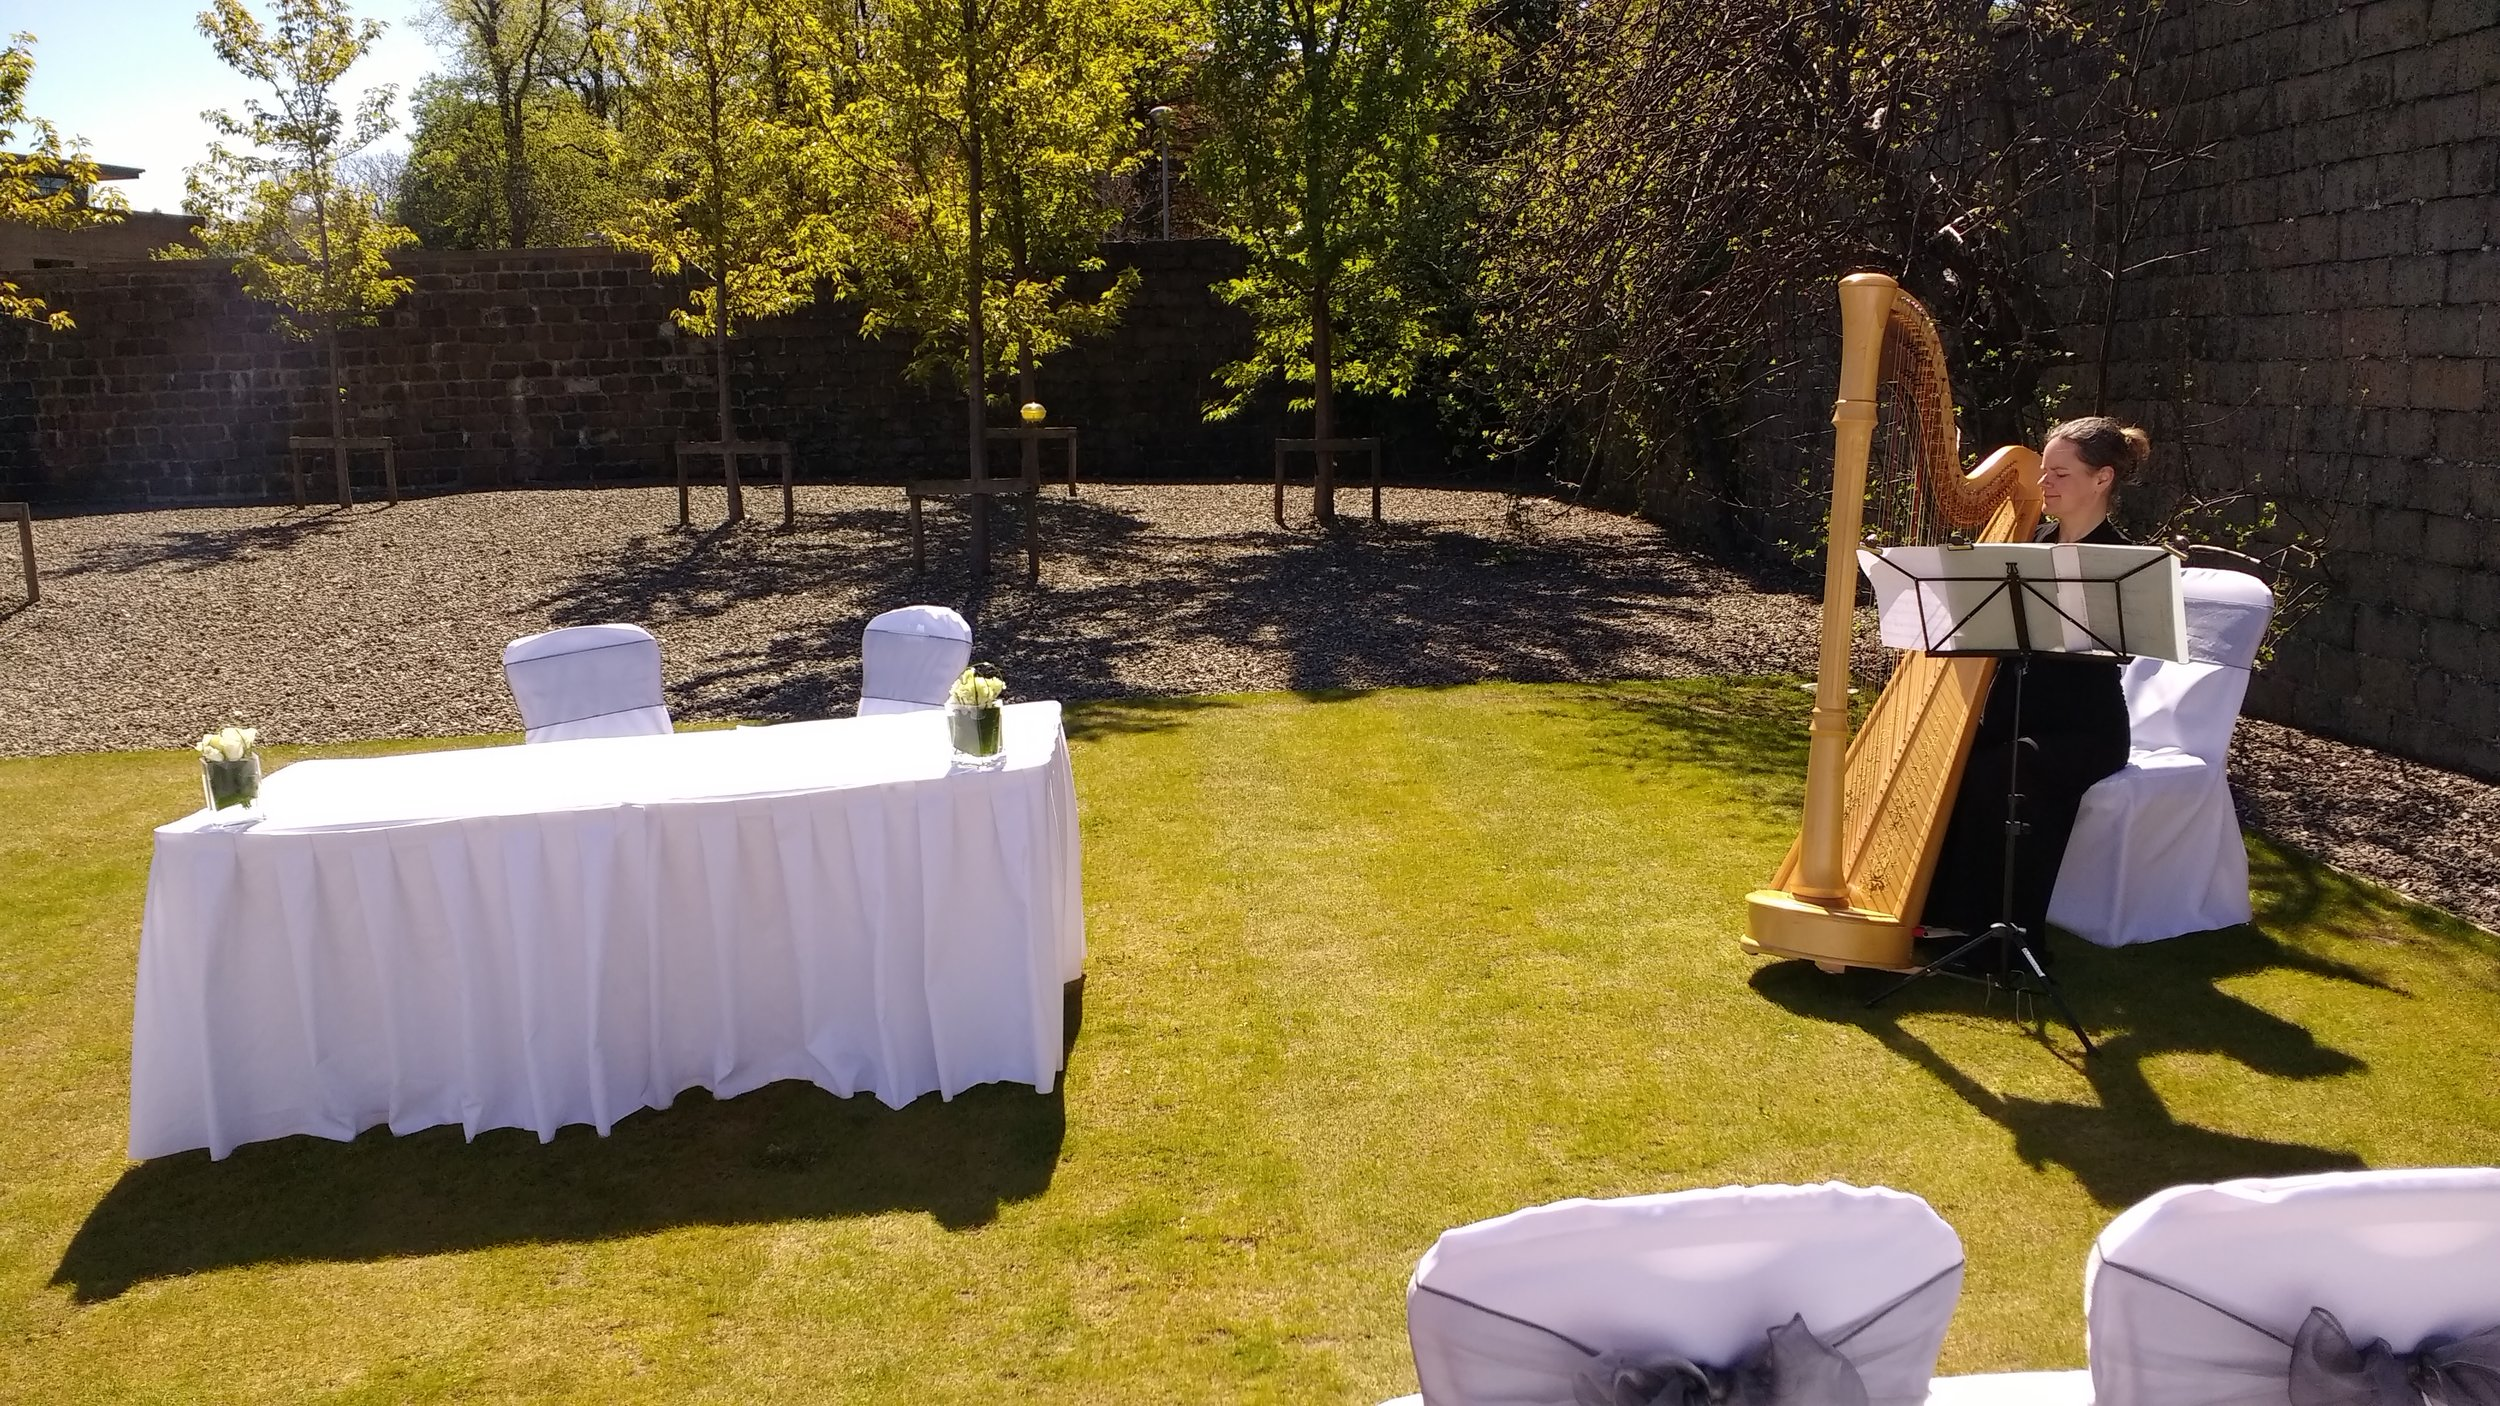 Enjoying the sunshine: setting up for a summer ceremony